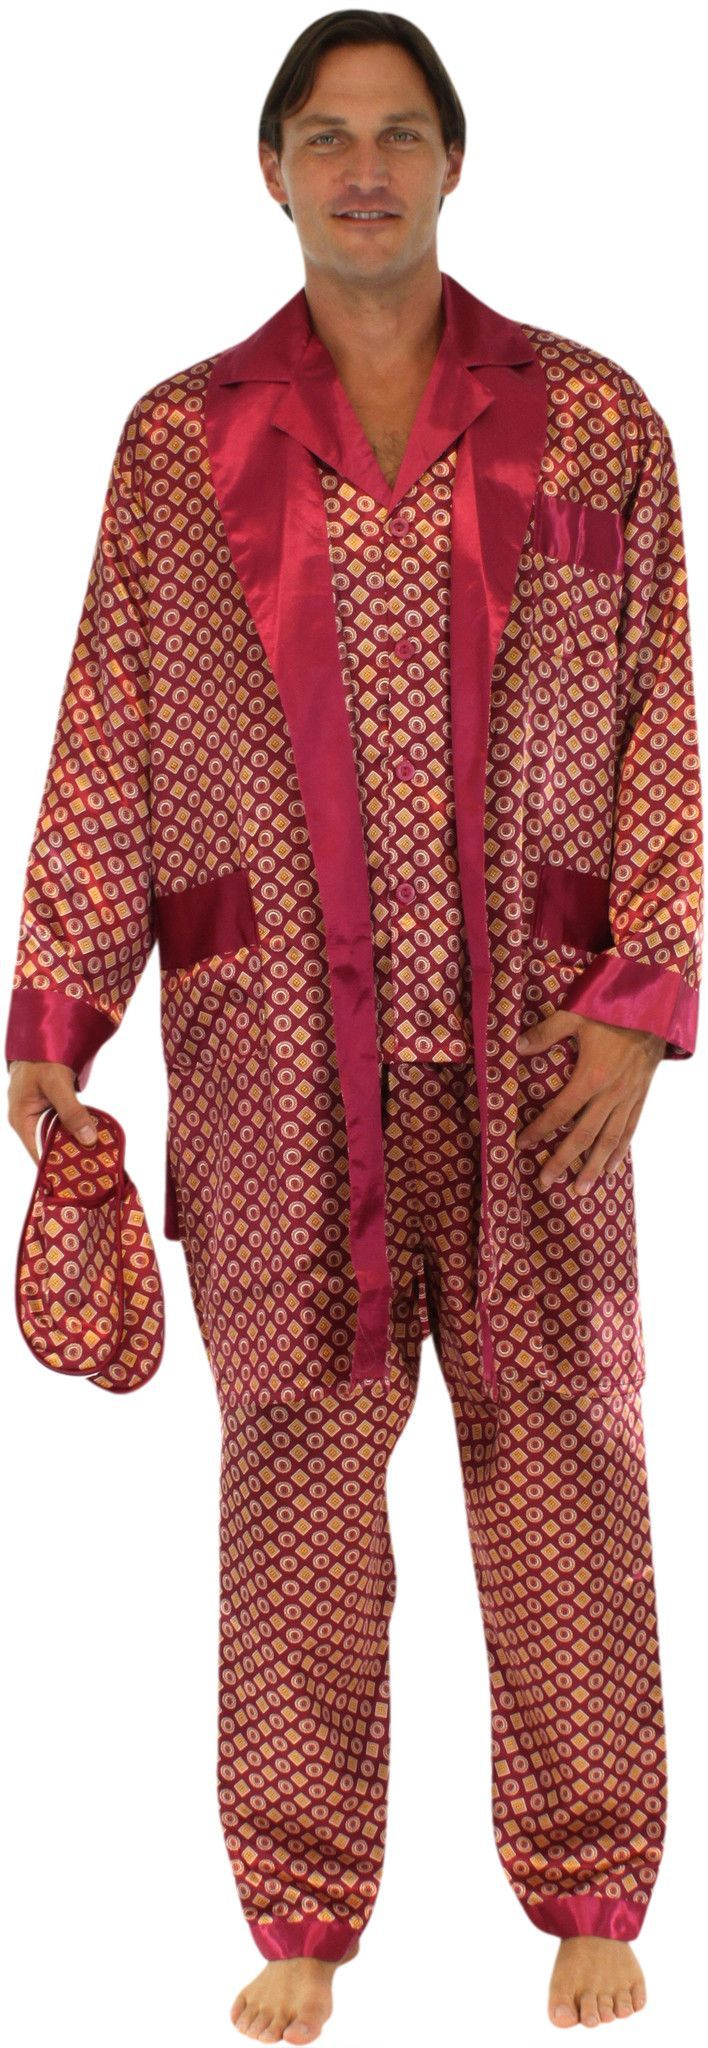 Pajama Heaven Men's Satin Pajama 5 Piece Gift Set -Robe, Boxer, Pajamas, and Slippers Grammie knows how  important it is to find time to relax.